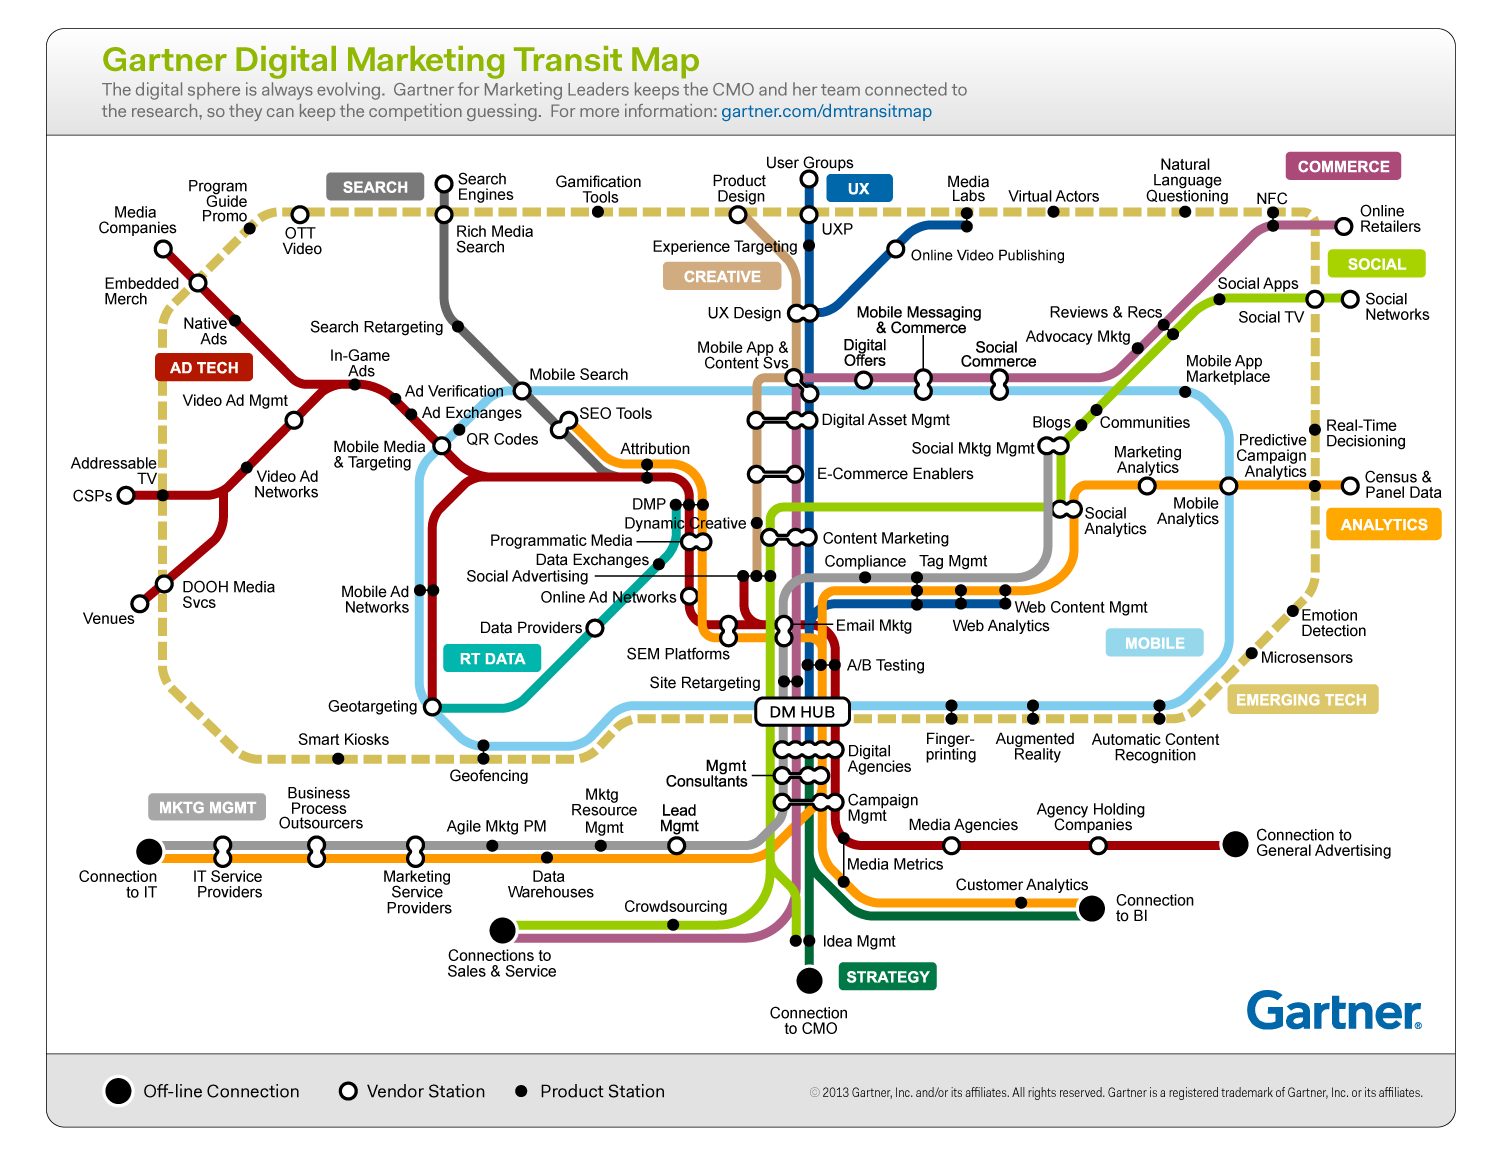 gartner-digital-marketing-transit-map